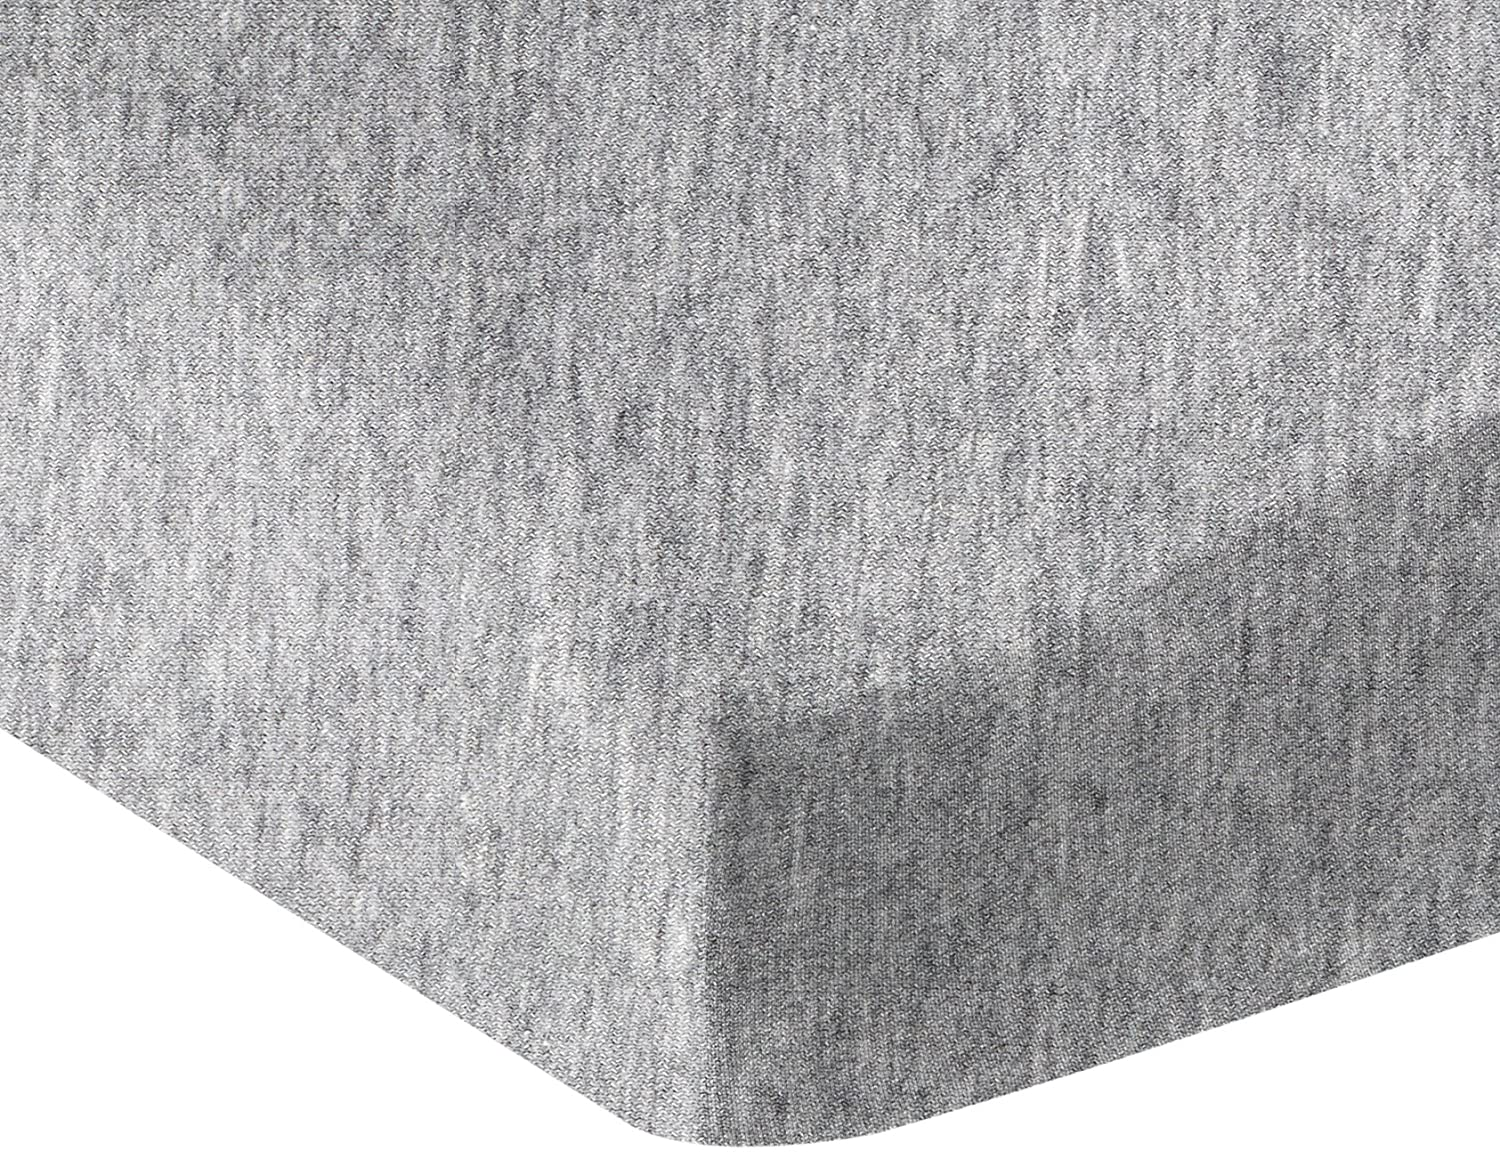 AmazonBasics Heather Jersey Fitted Bedsheet for Cribs, Light Gray